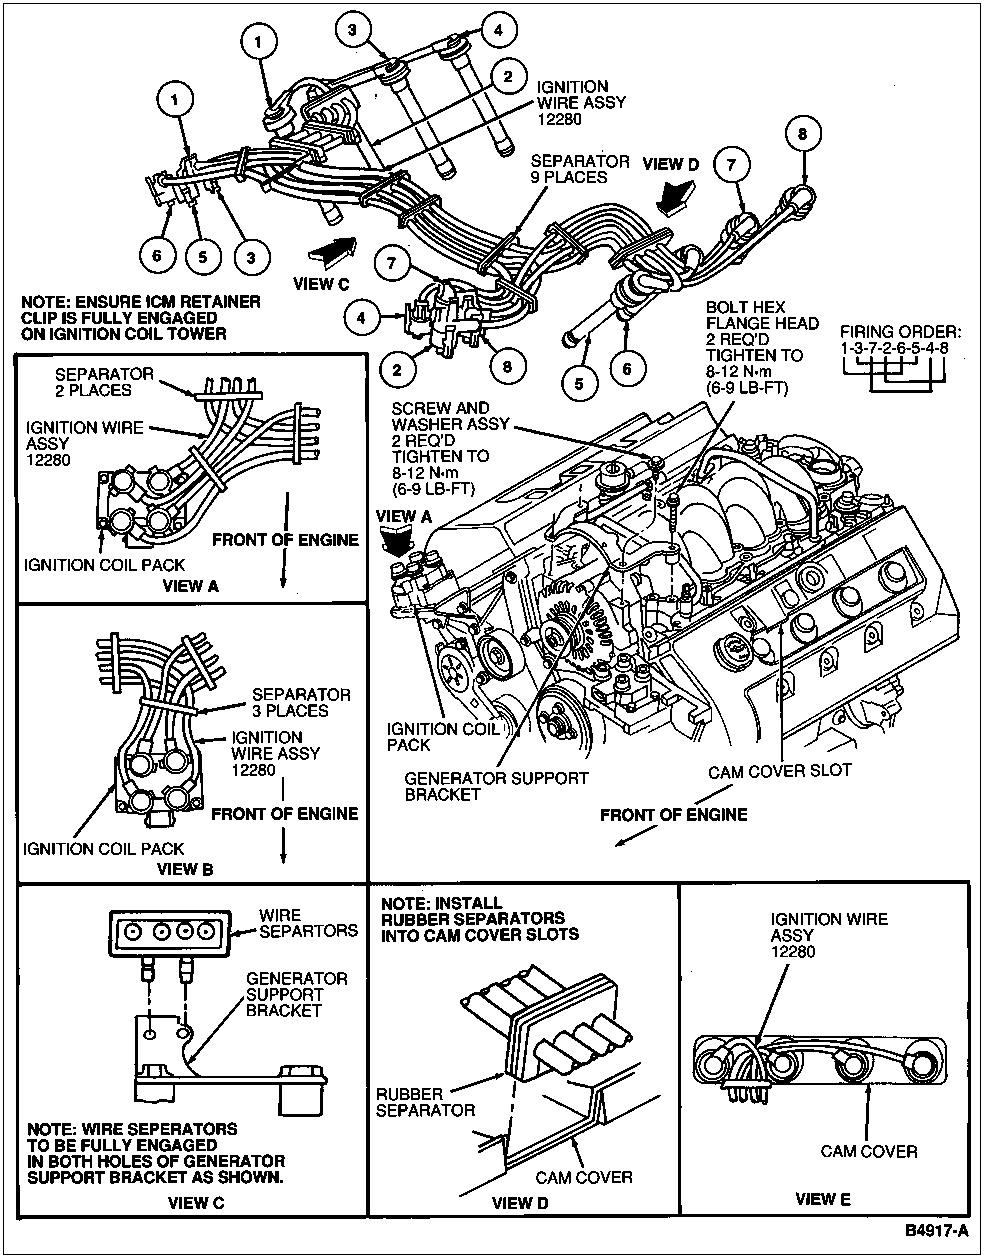 96 Lincoln Continental Engine Diagram | Wiring Liry on